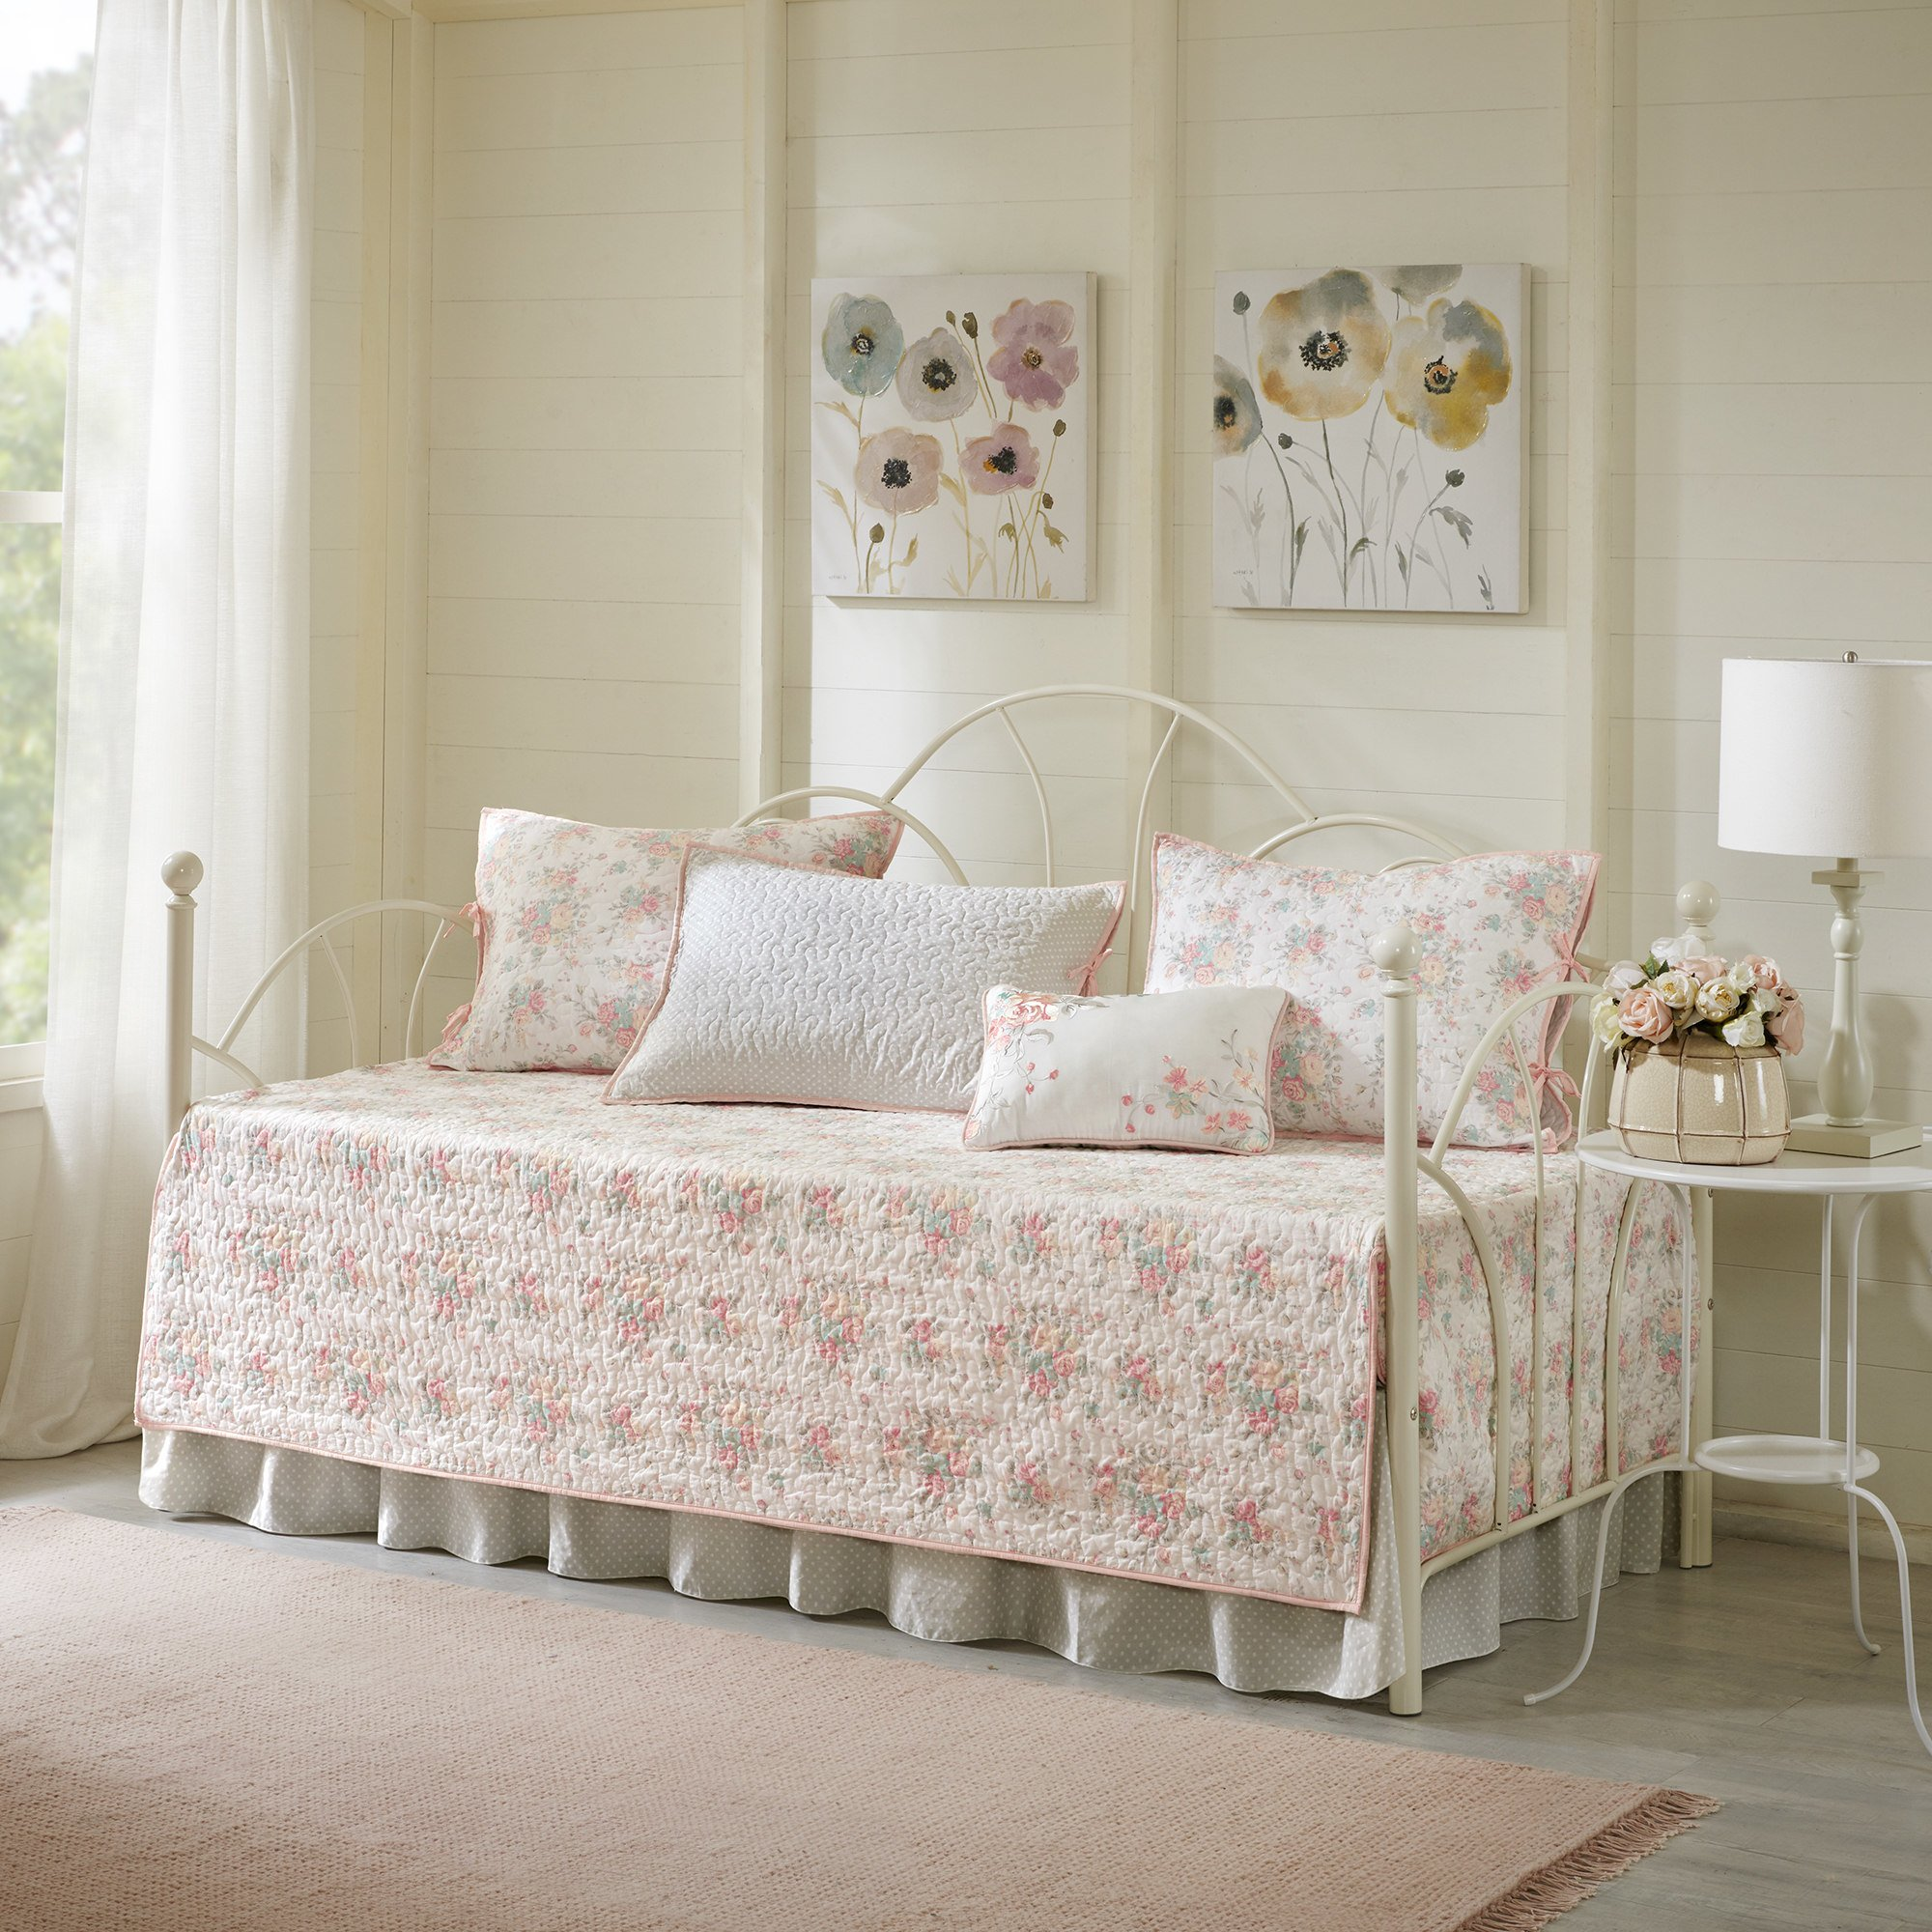 6 Piece Pink White Floral Daybed Cover Set, Geometric French Country Shabby Chic Motif Flower Cottage Farmhouse Pattern Day Bed Bedskirt Pillows, Polyester